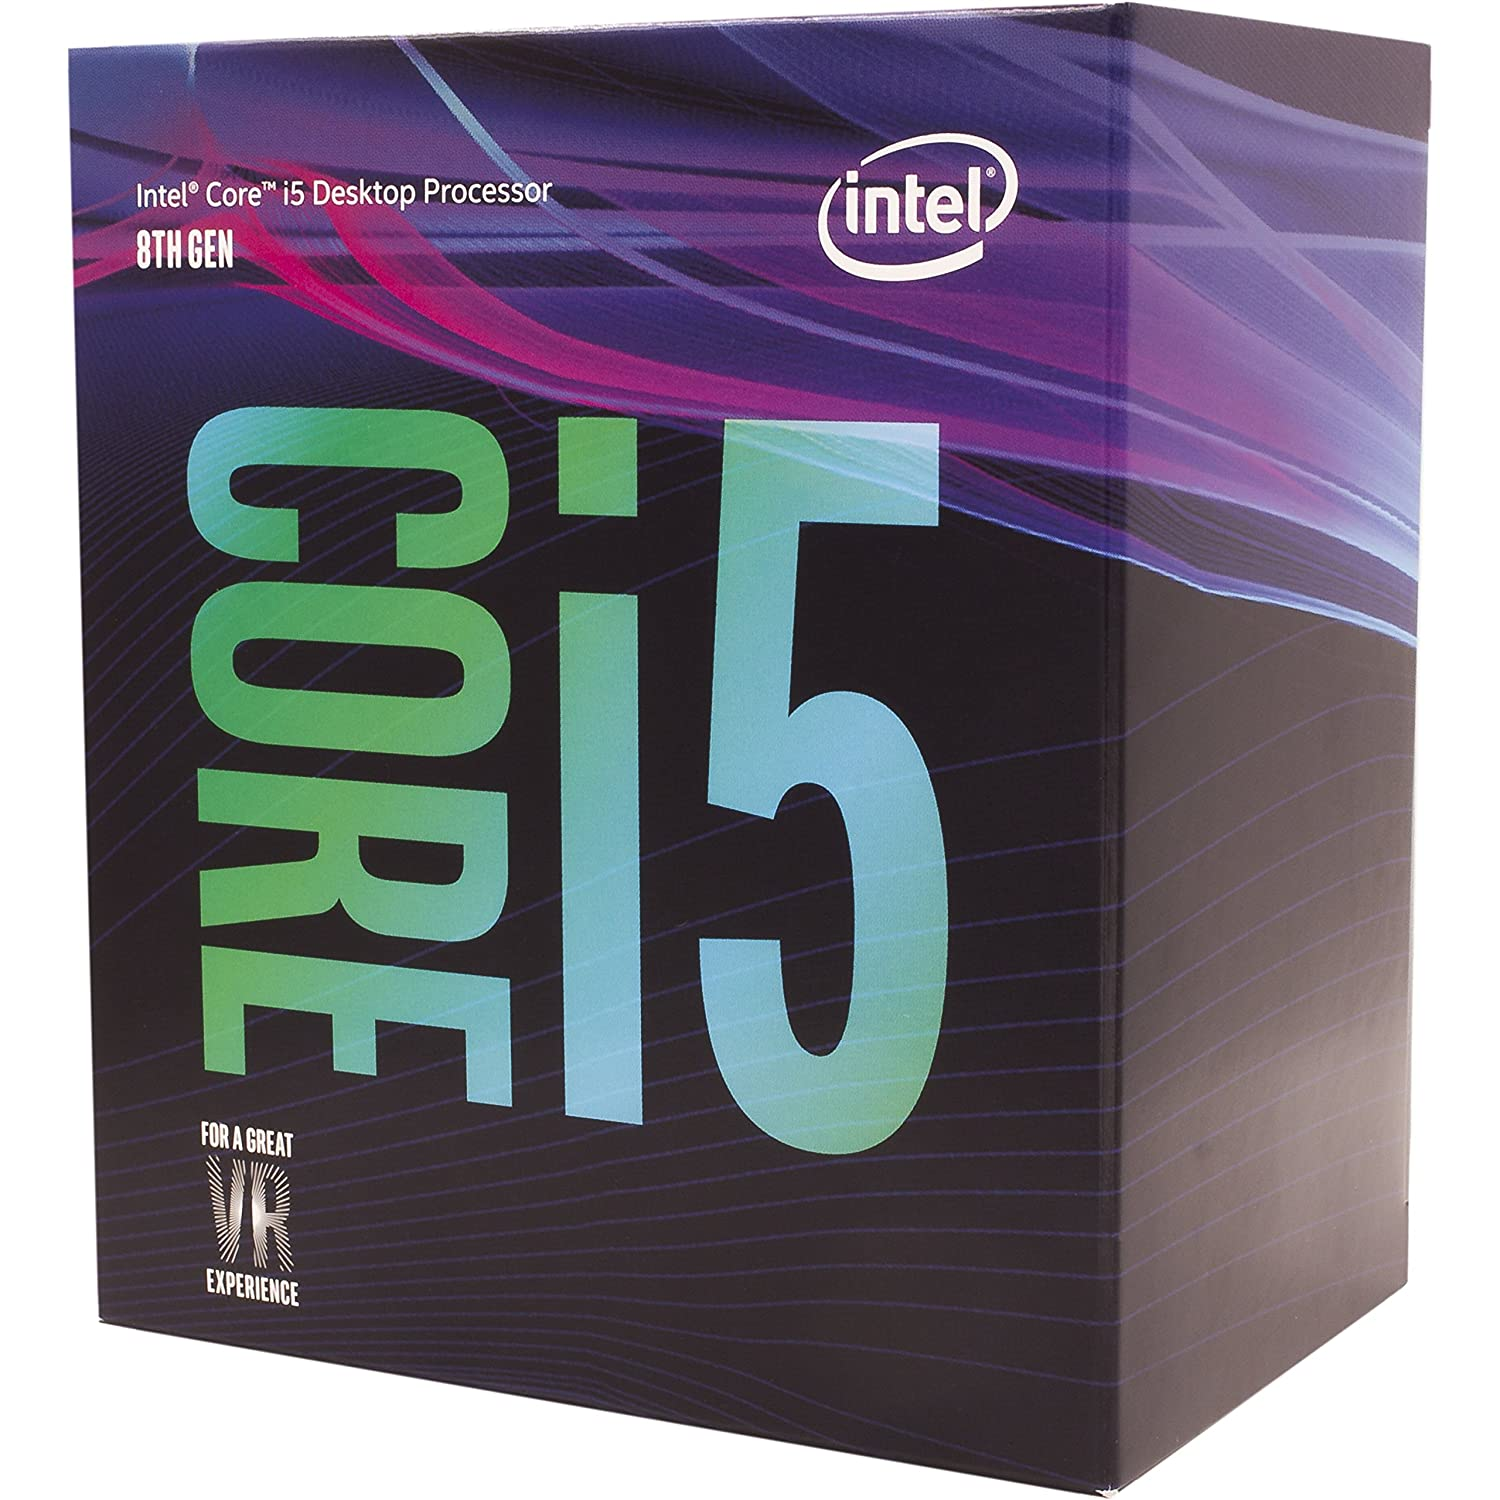 Intel Core i5-8500 Desktop Processor 6 Core